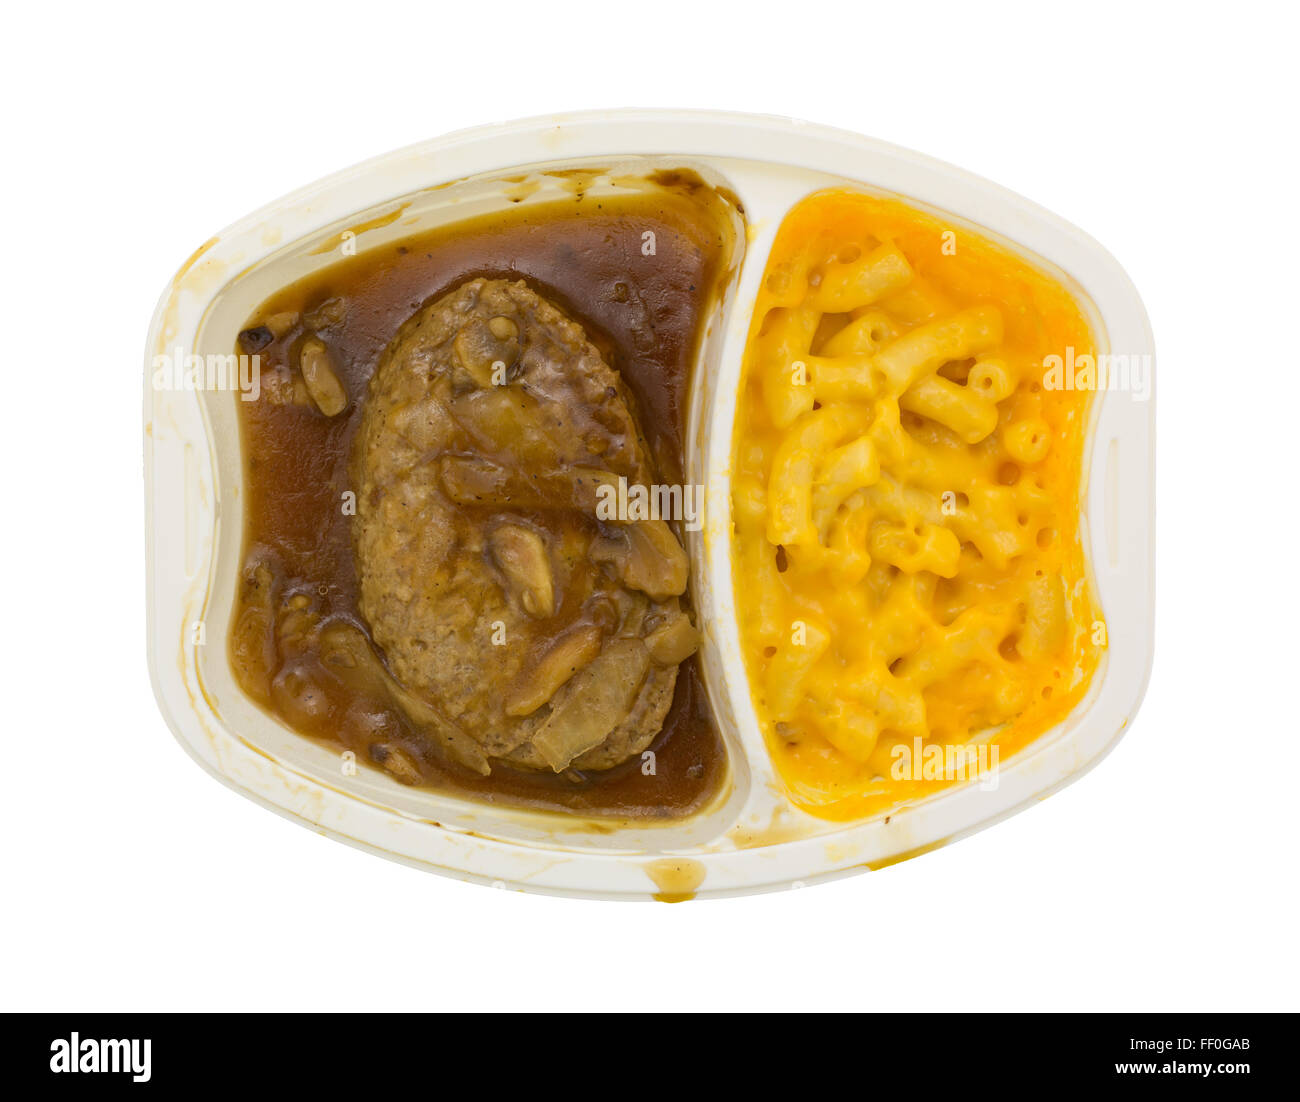 Top view of a microwaved Salisbury steak plus macaroni and cheese TV dinner in a plastic tray isolated on a white - Stock Image